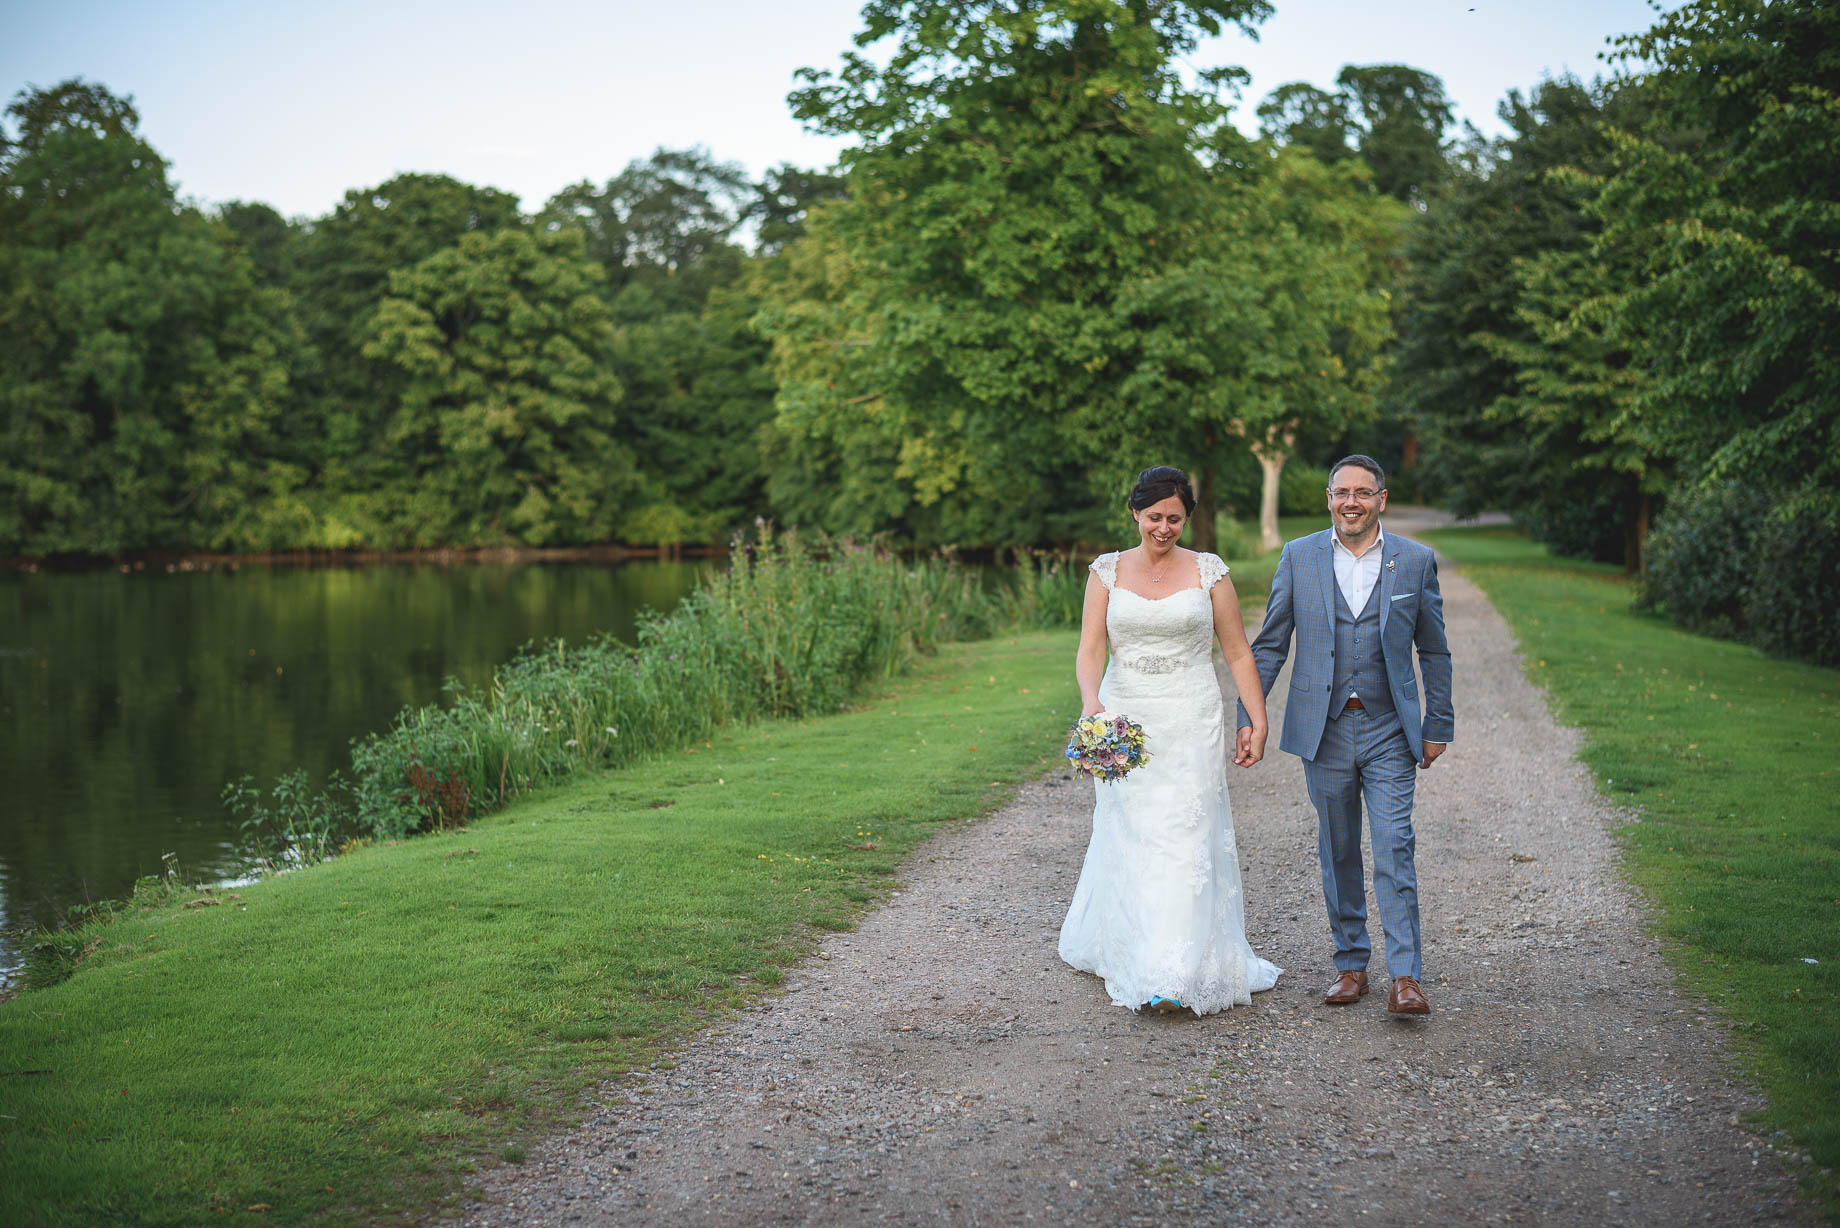 Luton Hoo wedding photography by Guy Collier Photography - Lauren and Gem (158 of 178)